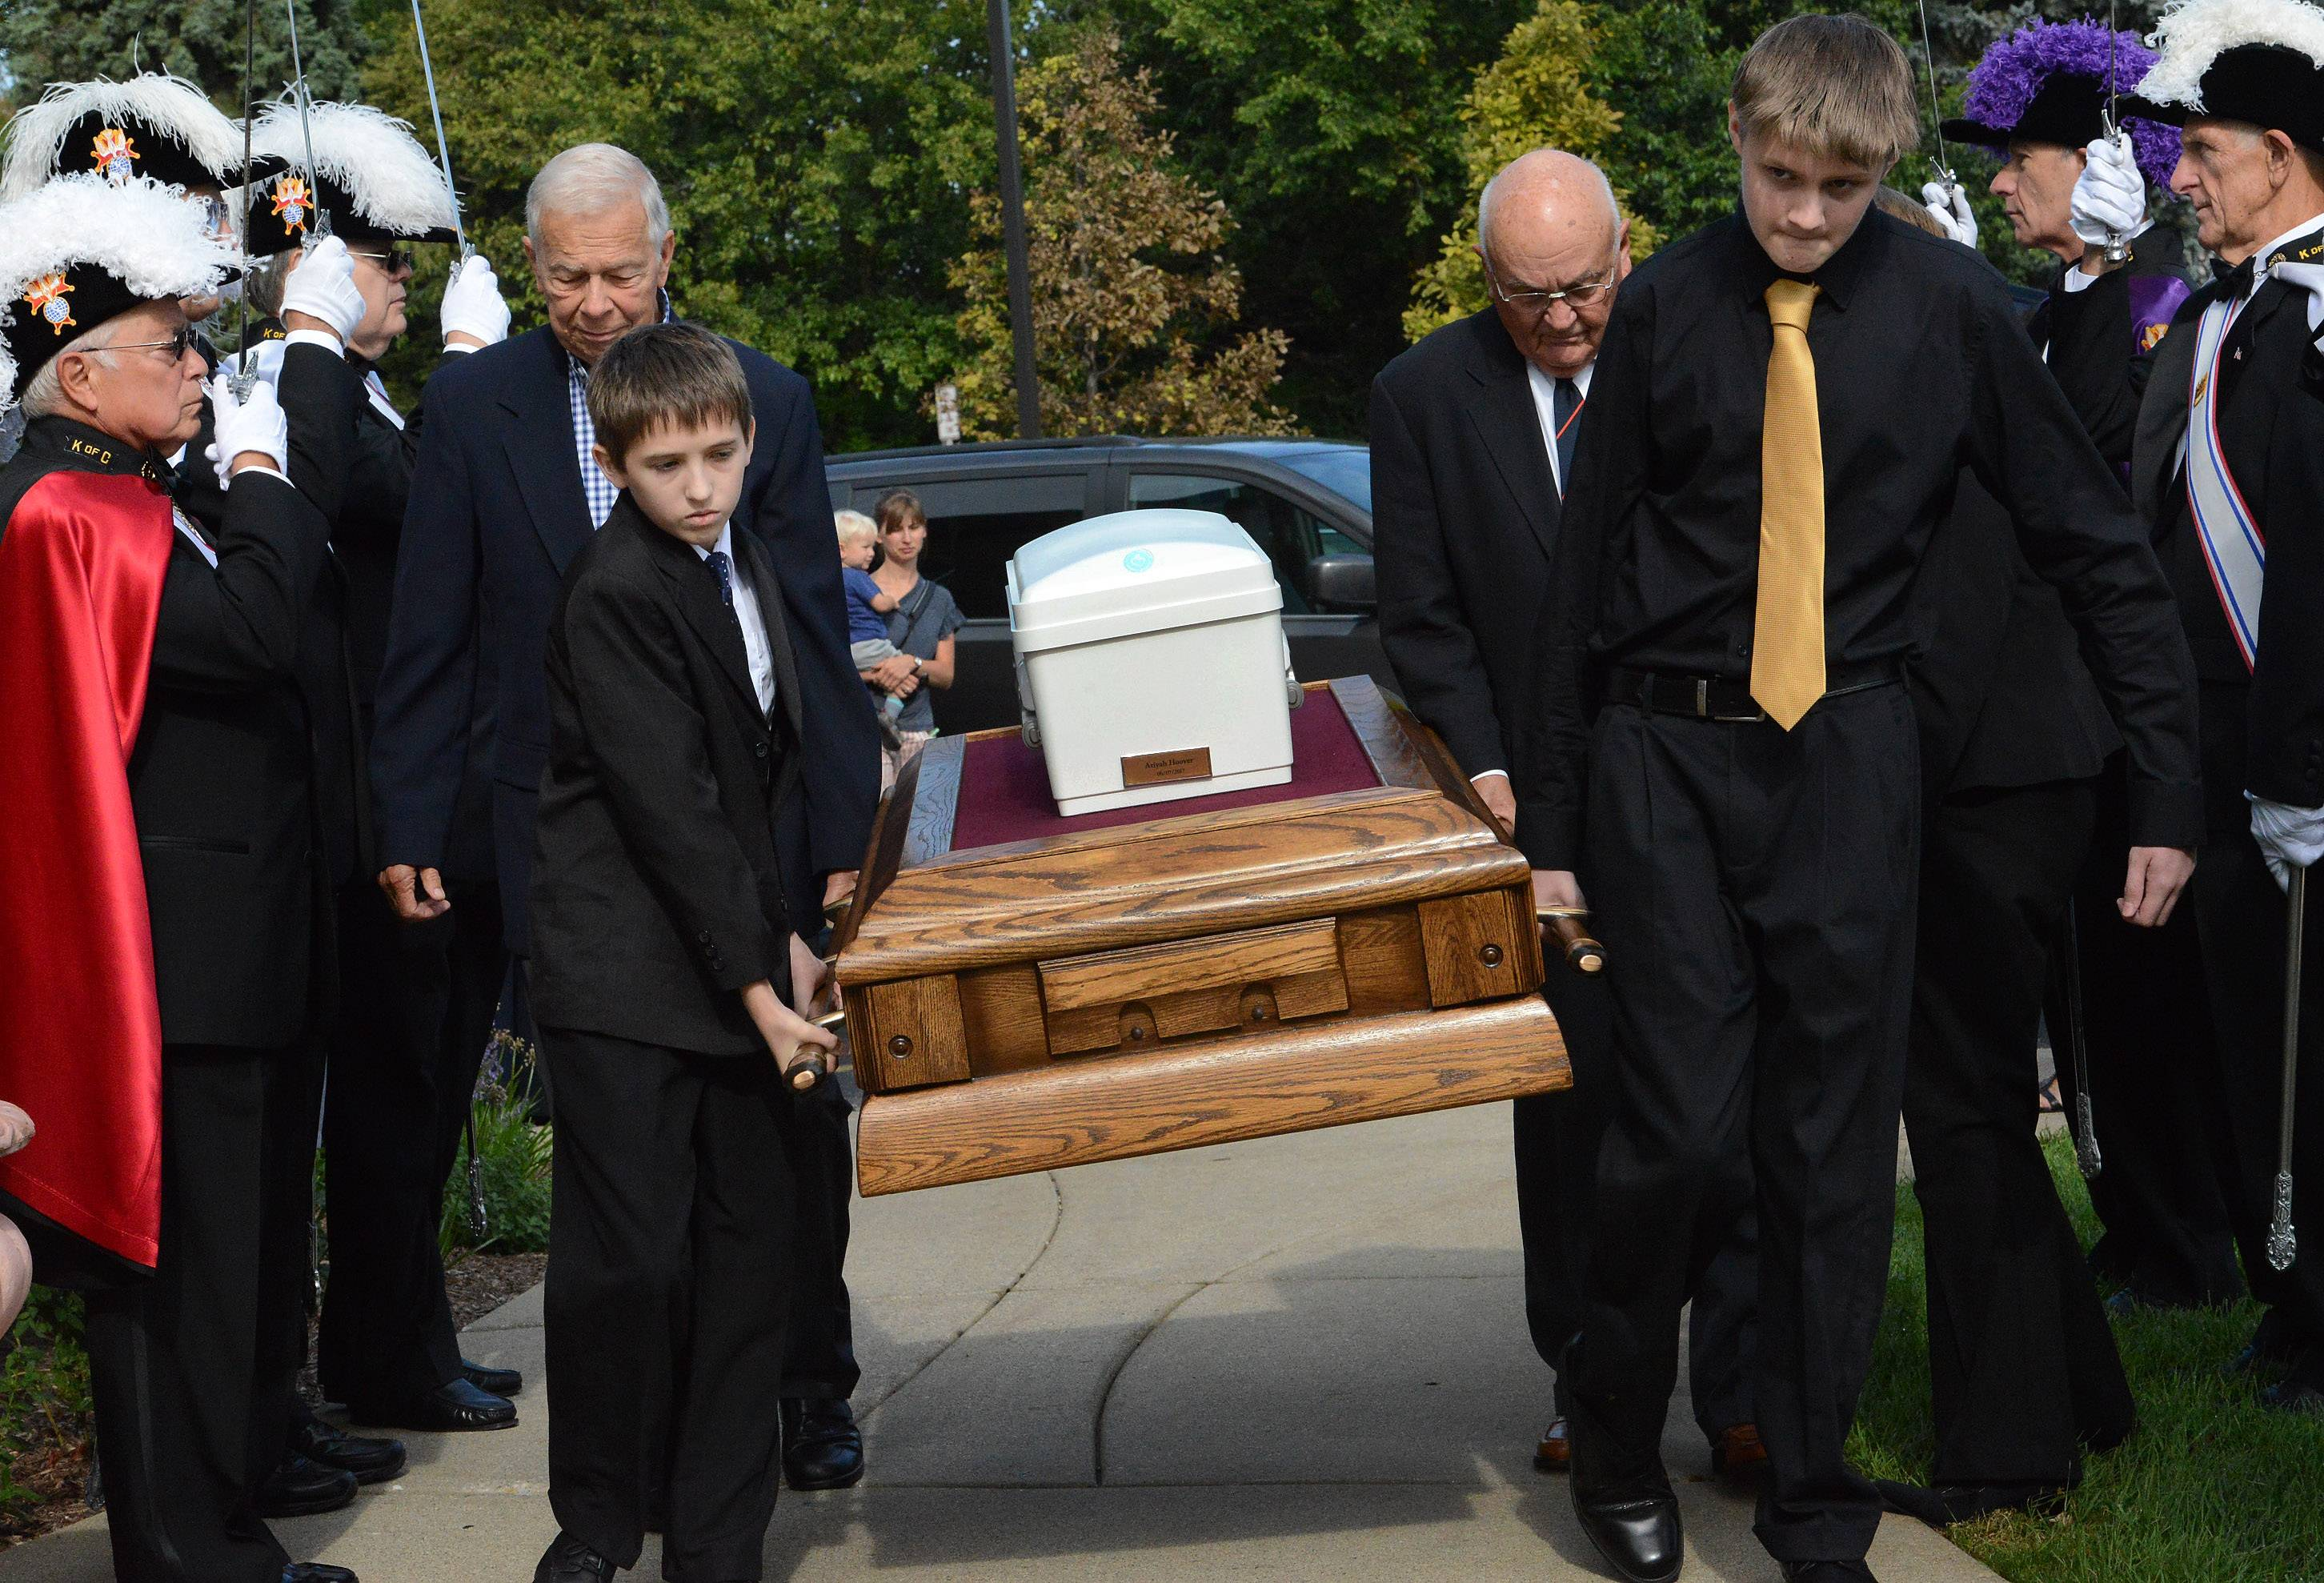 The casket of Ariyah Mikayla Hoover is carried into St. Mary Church in Buffalo Grove by Frank, left, and Joey Matusiewicz of Volo before her funeral.